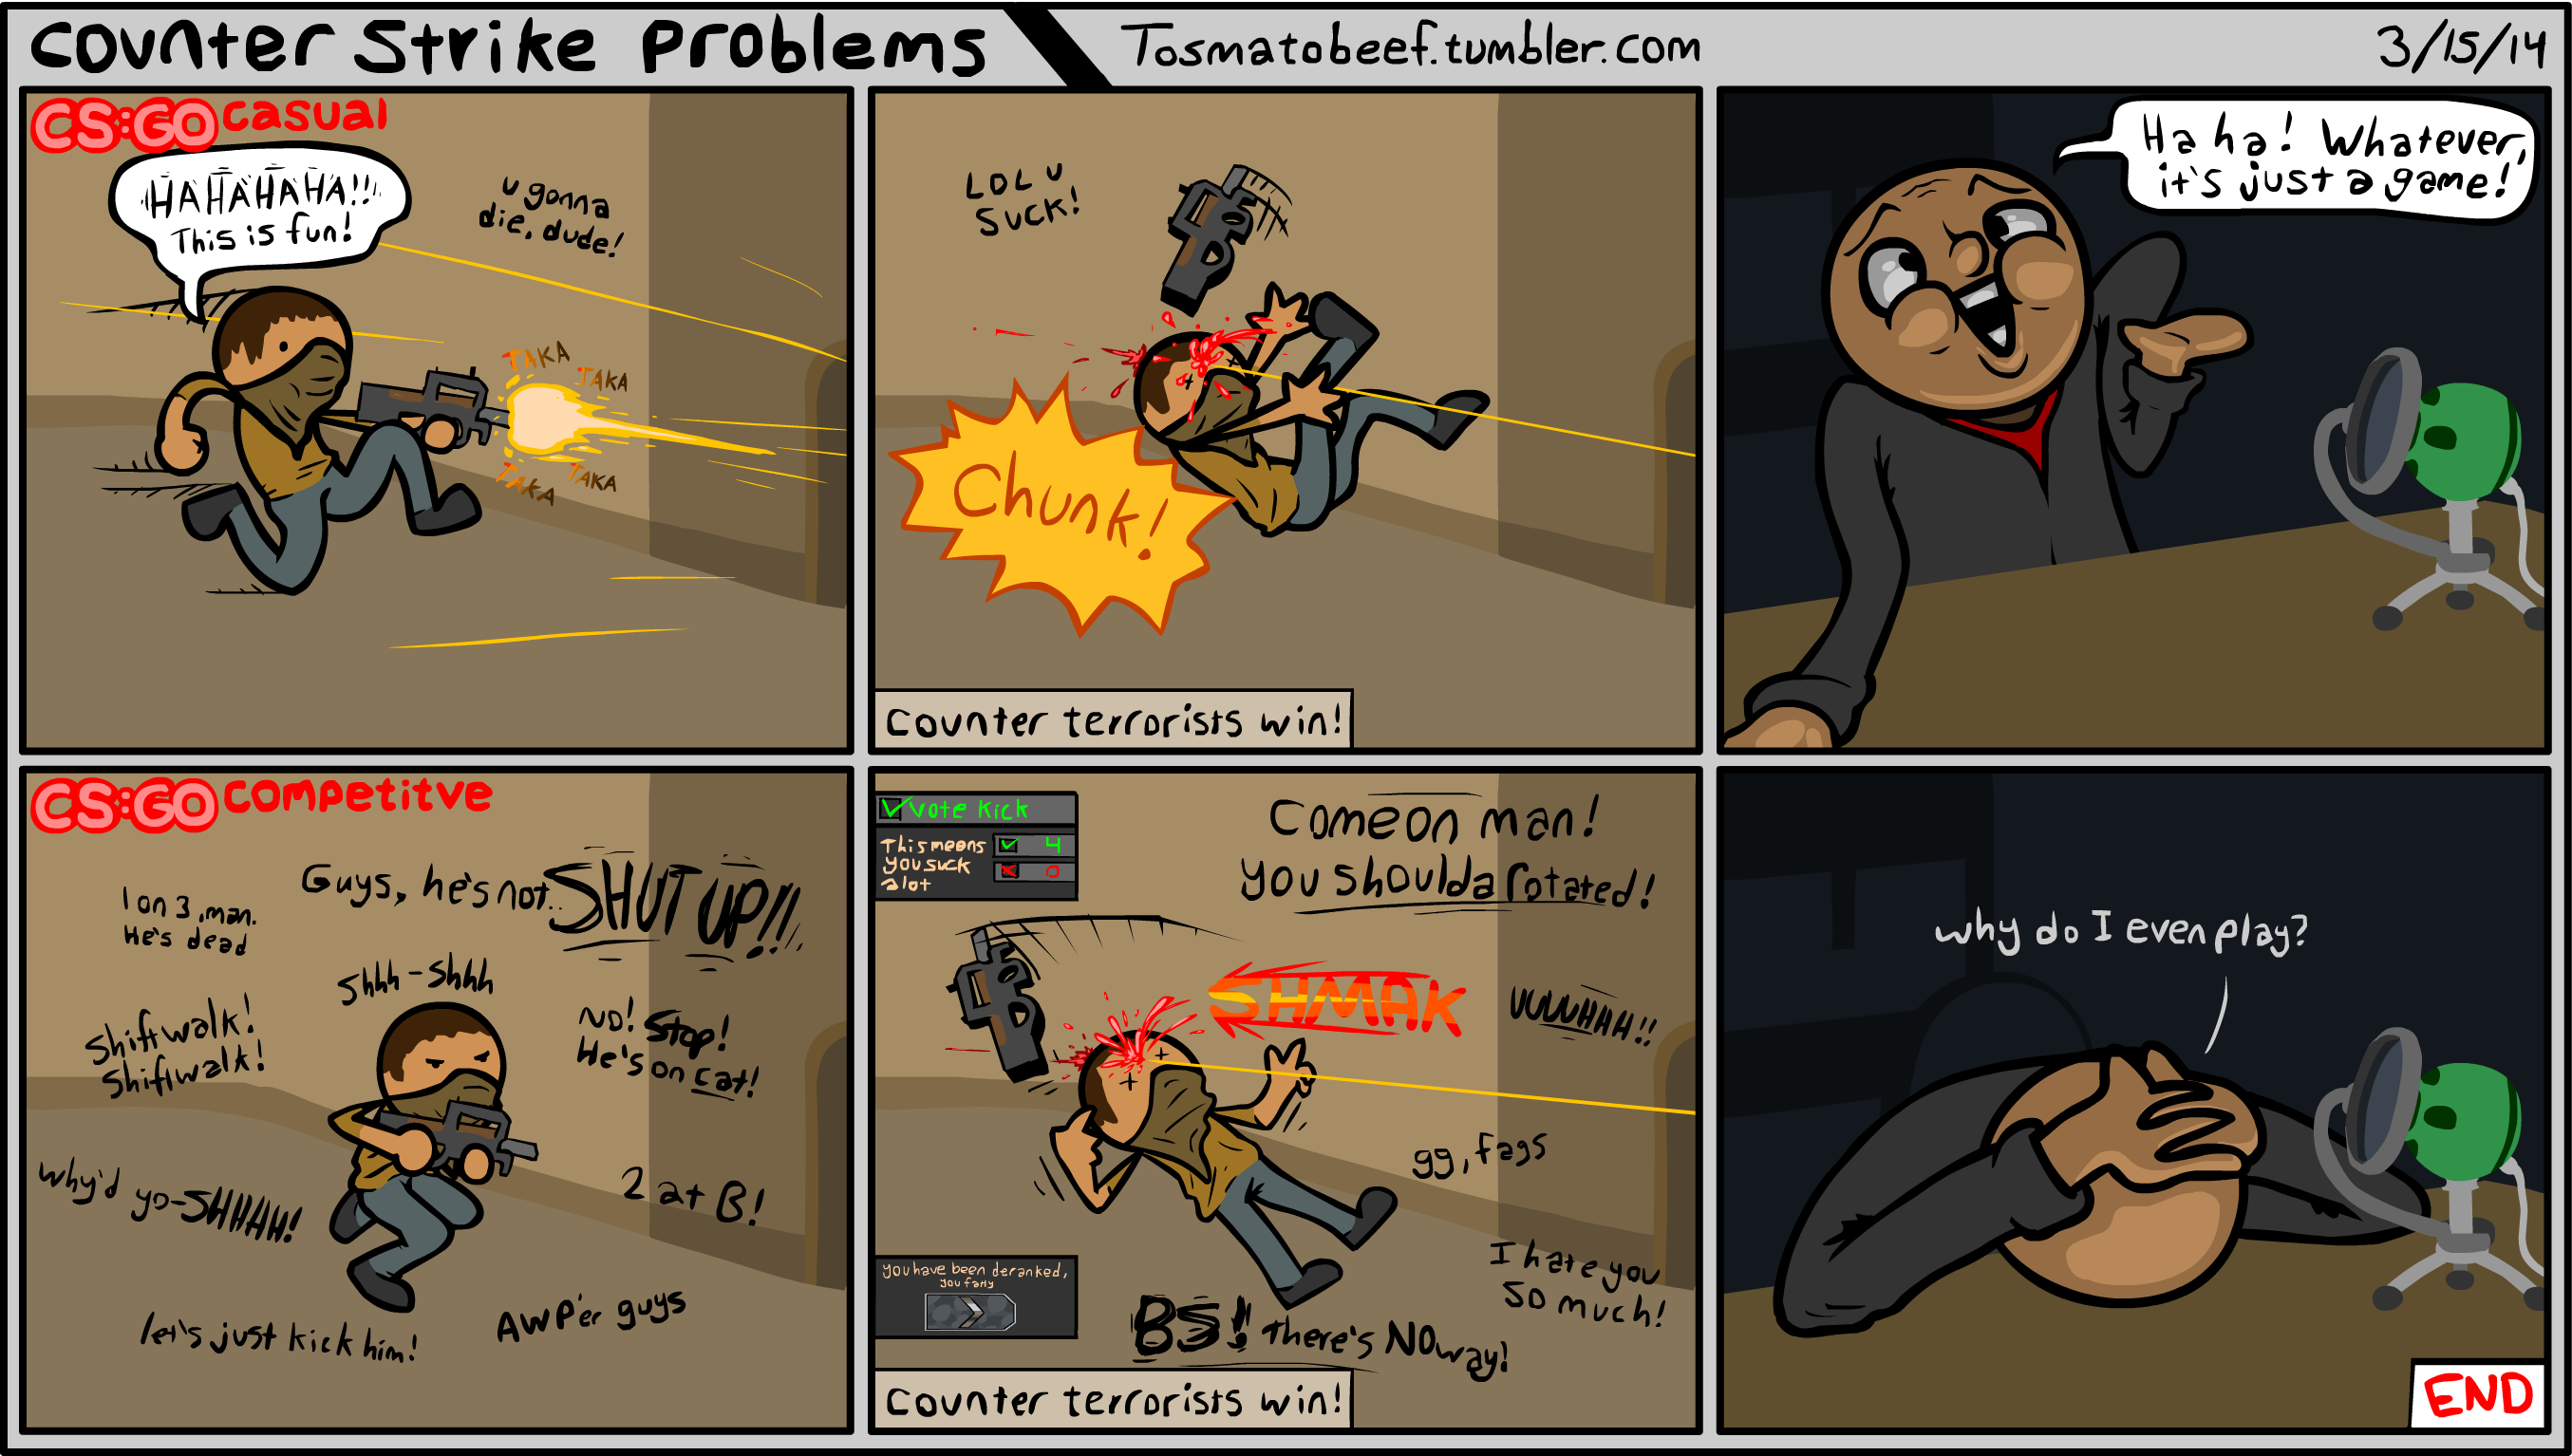 Counter Strike Problems